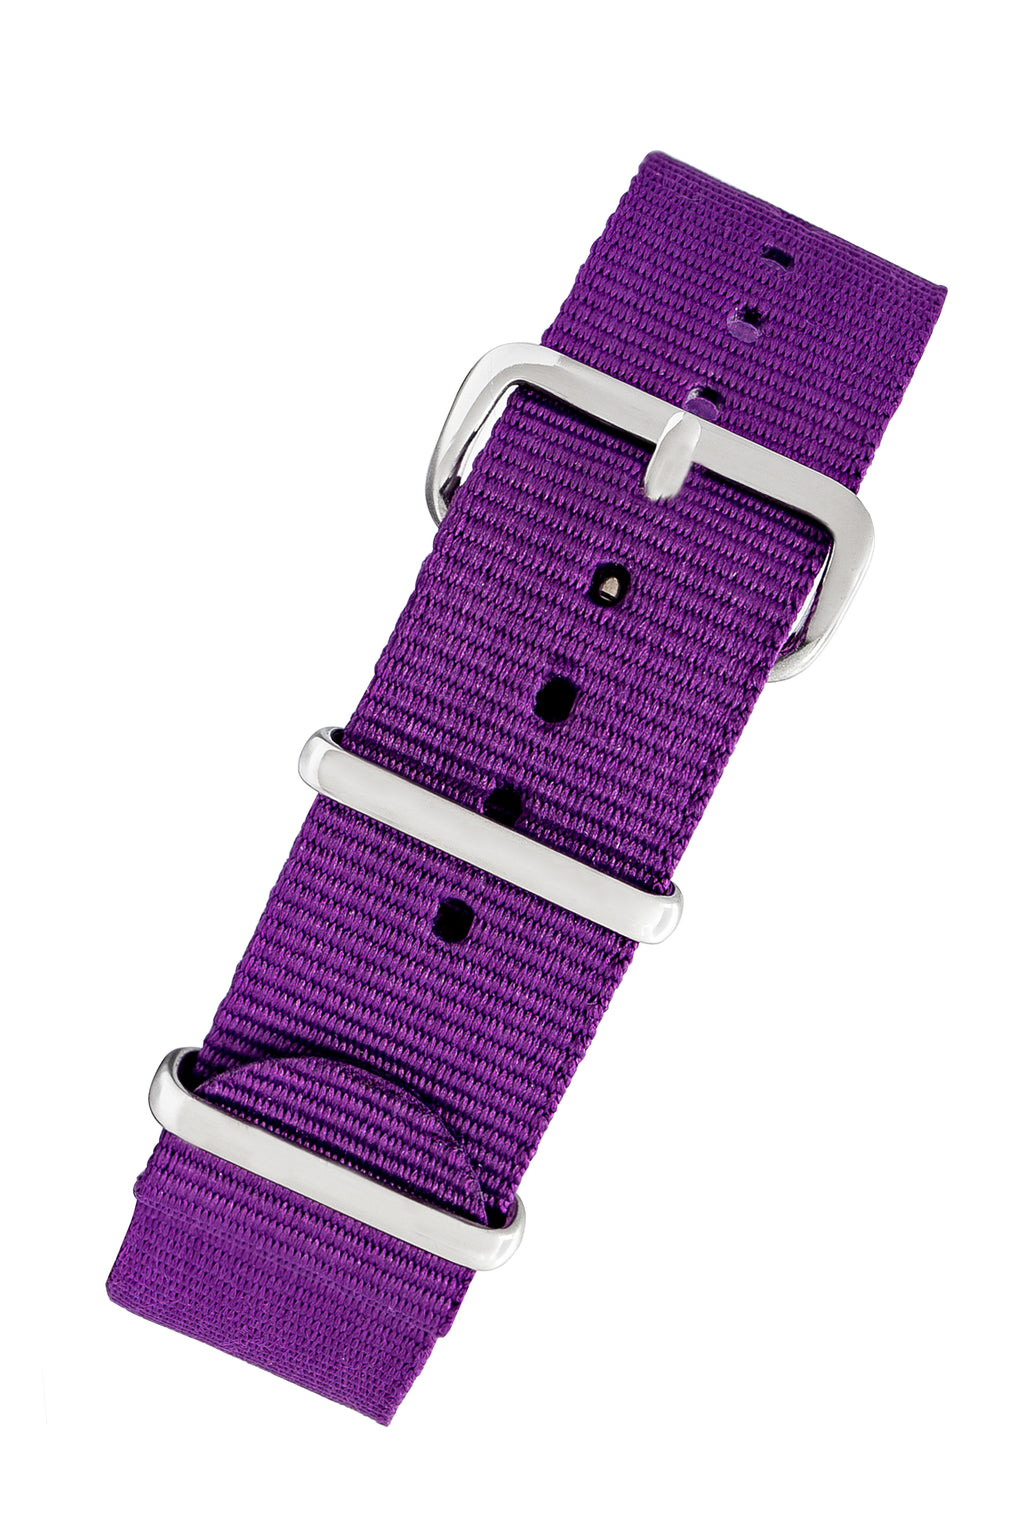 NATO Watch Straps in PURPLE with Polished Buckle and Keepers